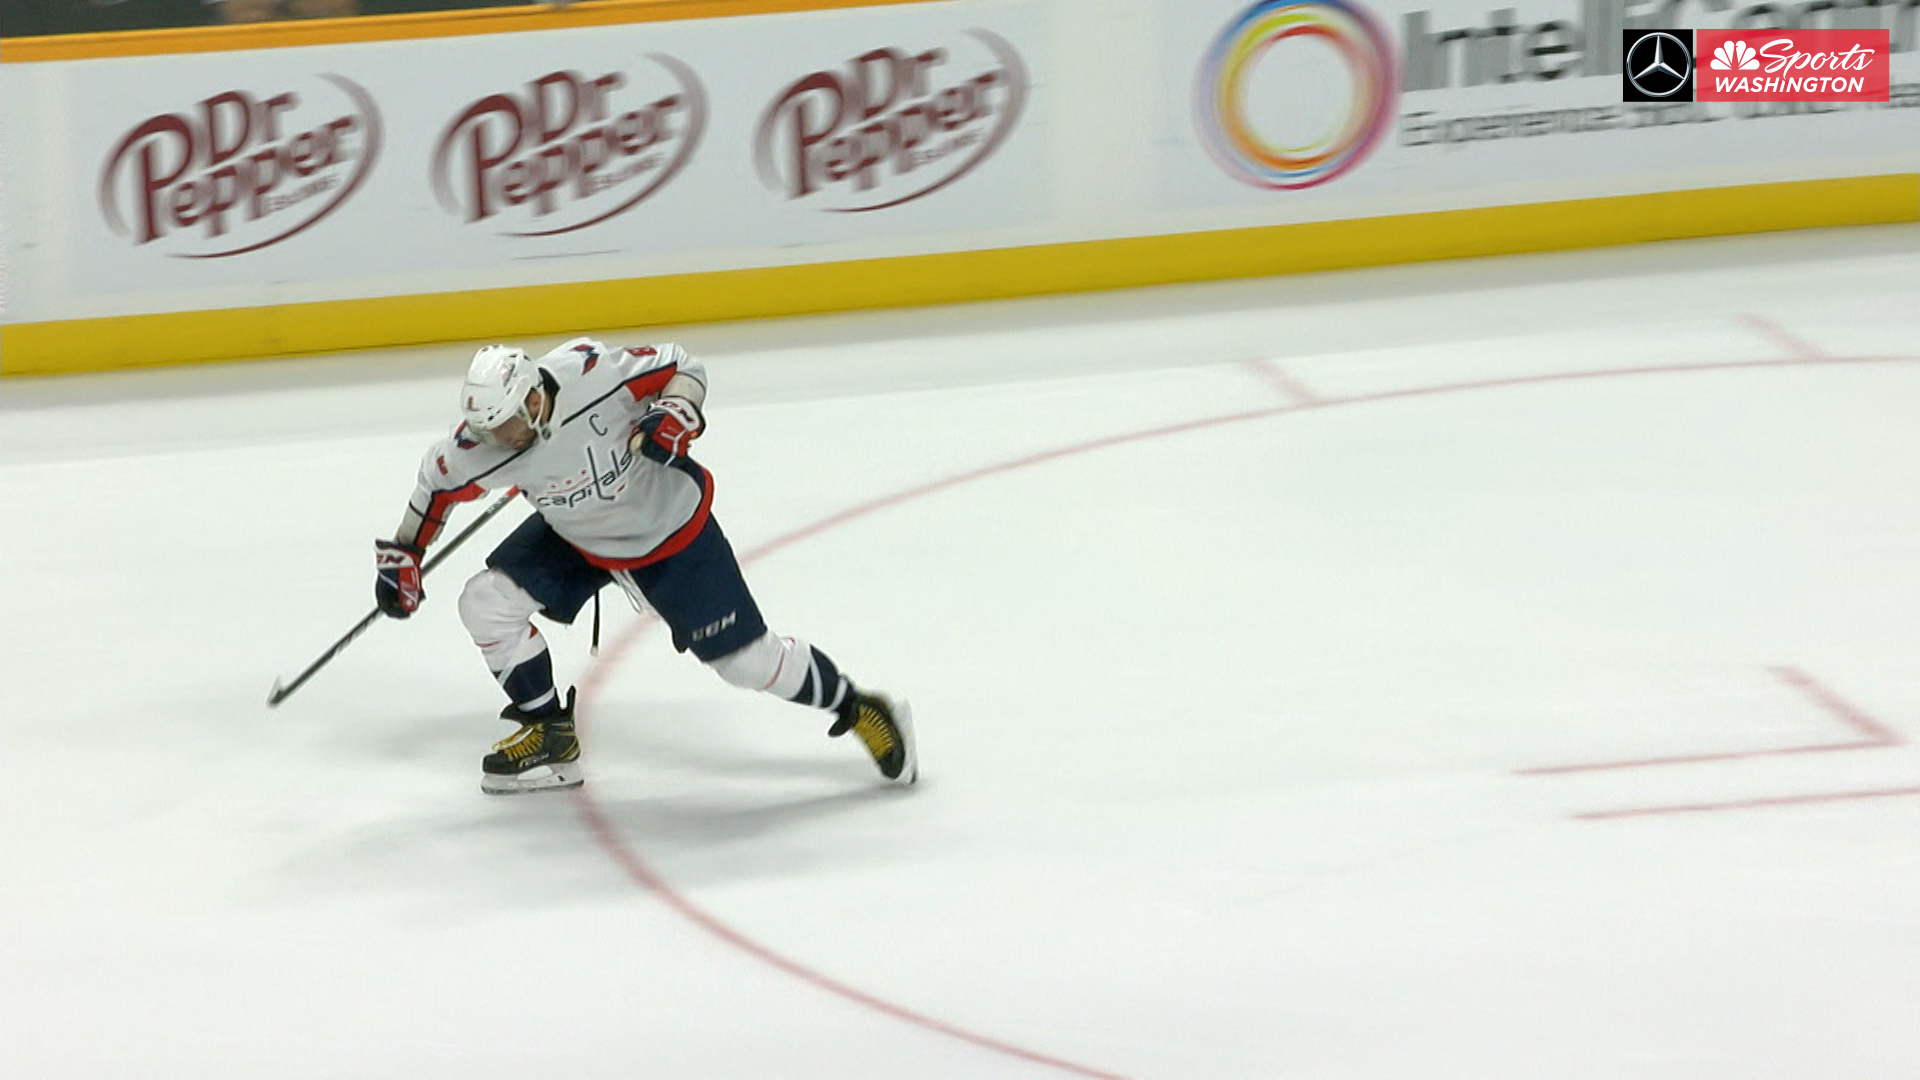 Alex Ovechkin's historic goal leads the Capitals' Top 5 Goals of the